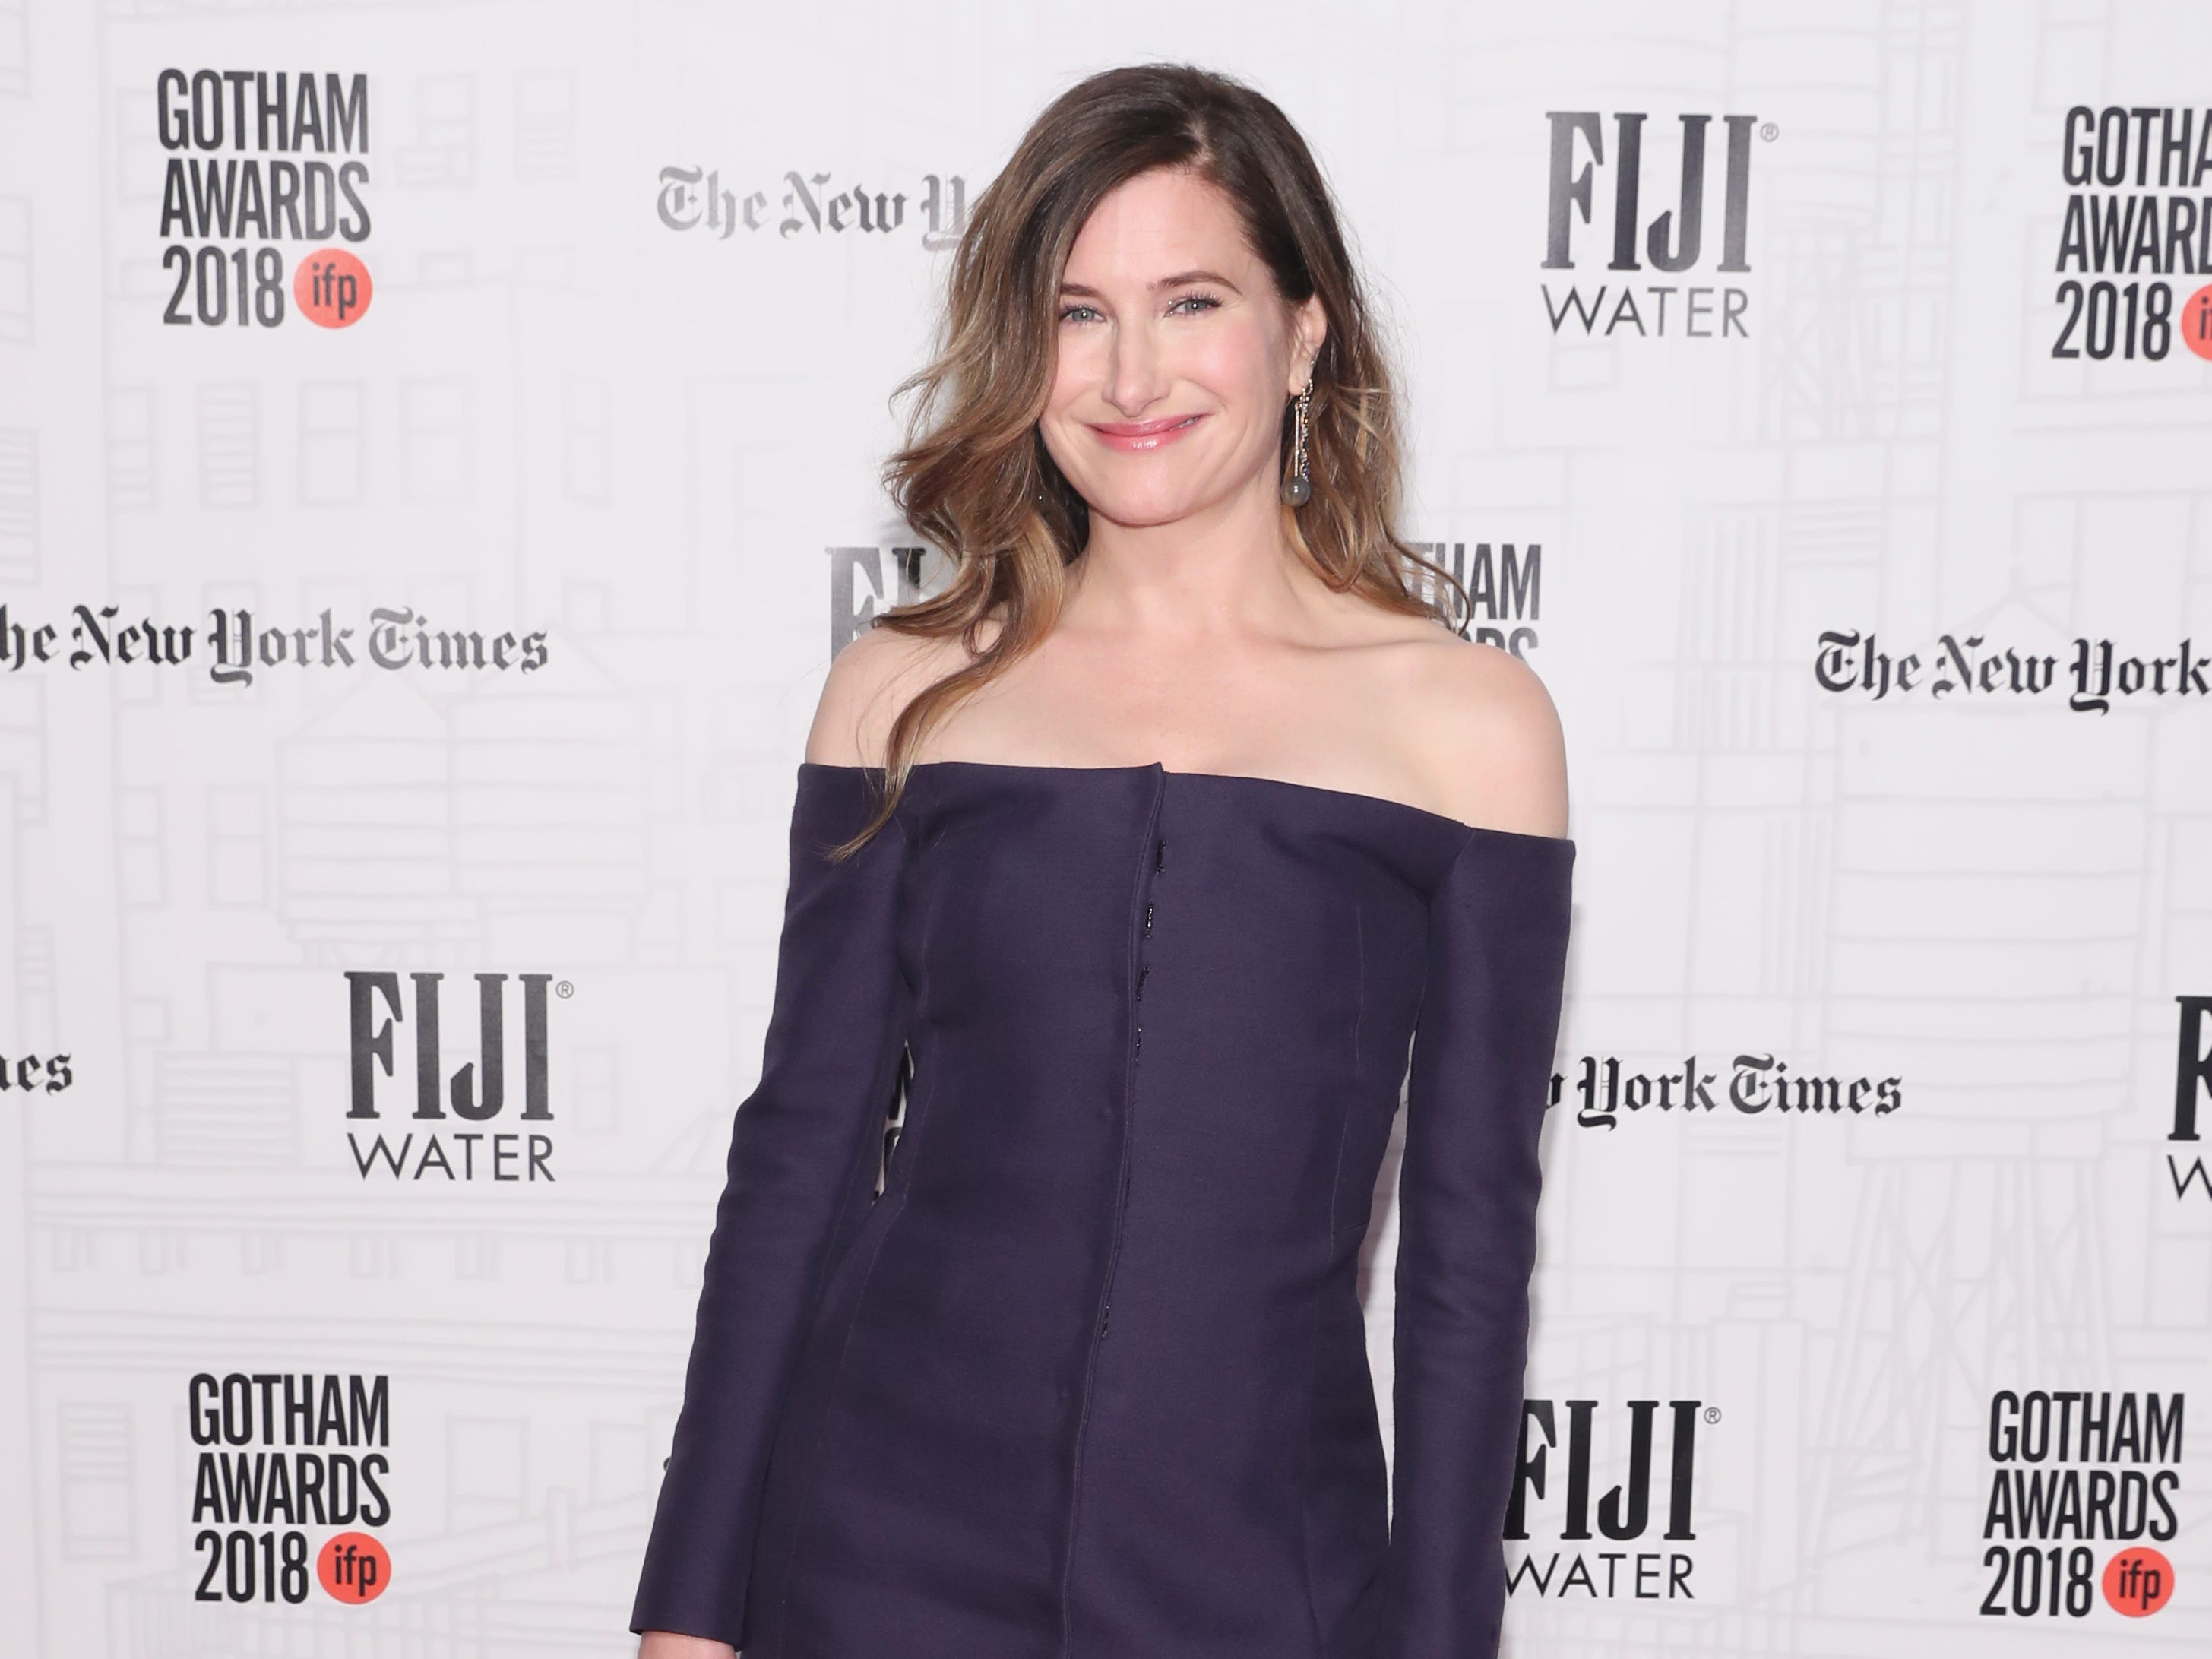 NEW YORK, NY - NOVEMBER 26:  Kathryn Hahn attends the 2018 IFP Gotham Awards with FIJI Water at Cipriani, Wall Street on November 26, 2018 in New York City.  (Photo by Cindy Ord/Getty Images for FIJI Water) ORG XMIT: 775261572 ORIG FILE ID: 1065551730